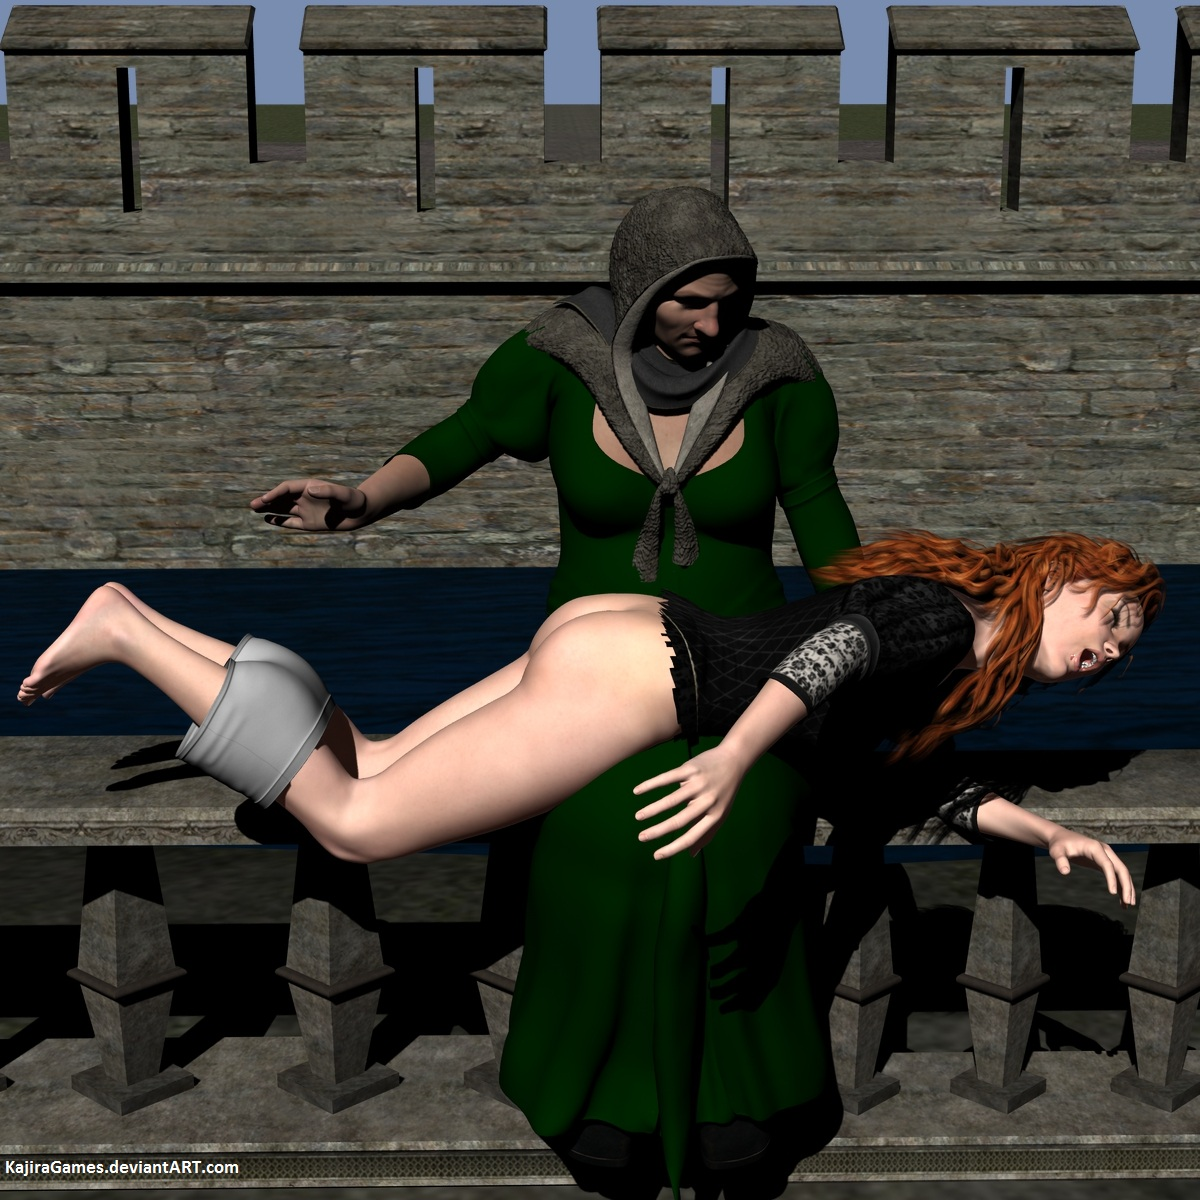 Free spanking games 3d spanking chat fucked image